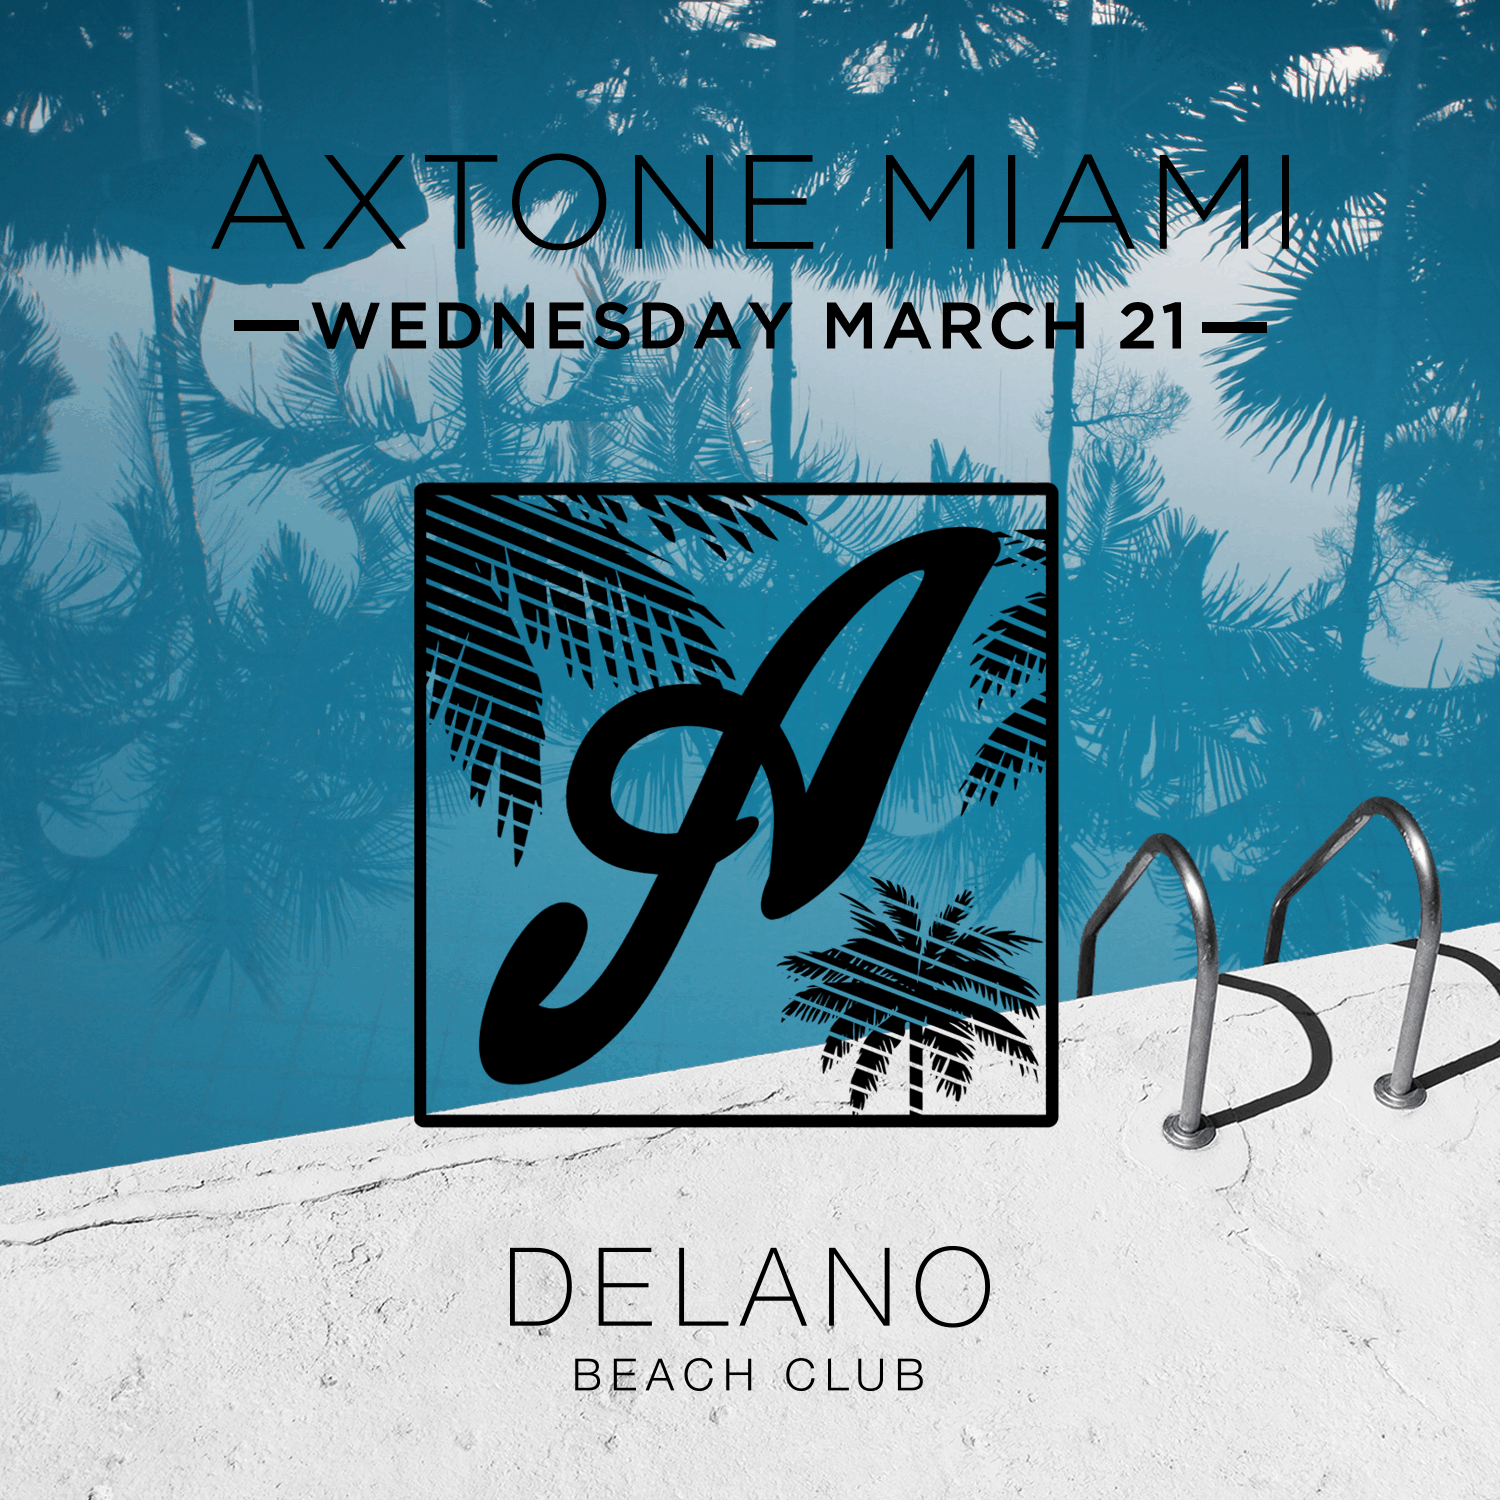 Axtone returns to the Delano, Miami on March 21st for its annual pool party!